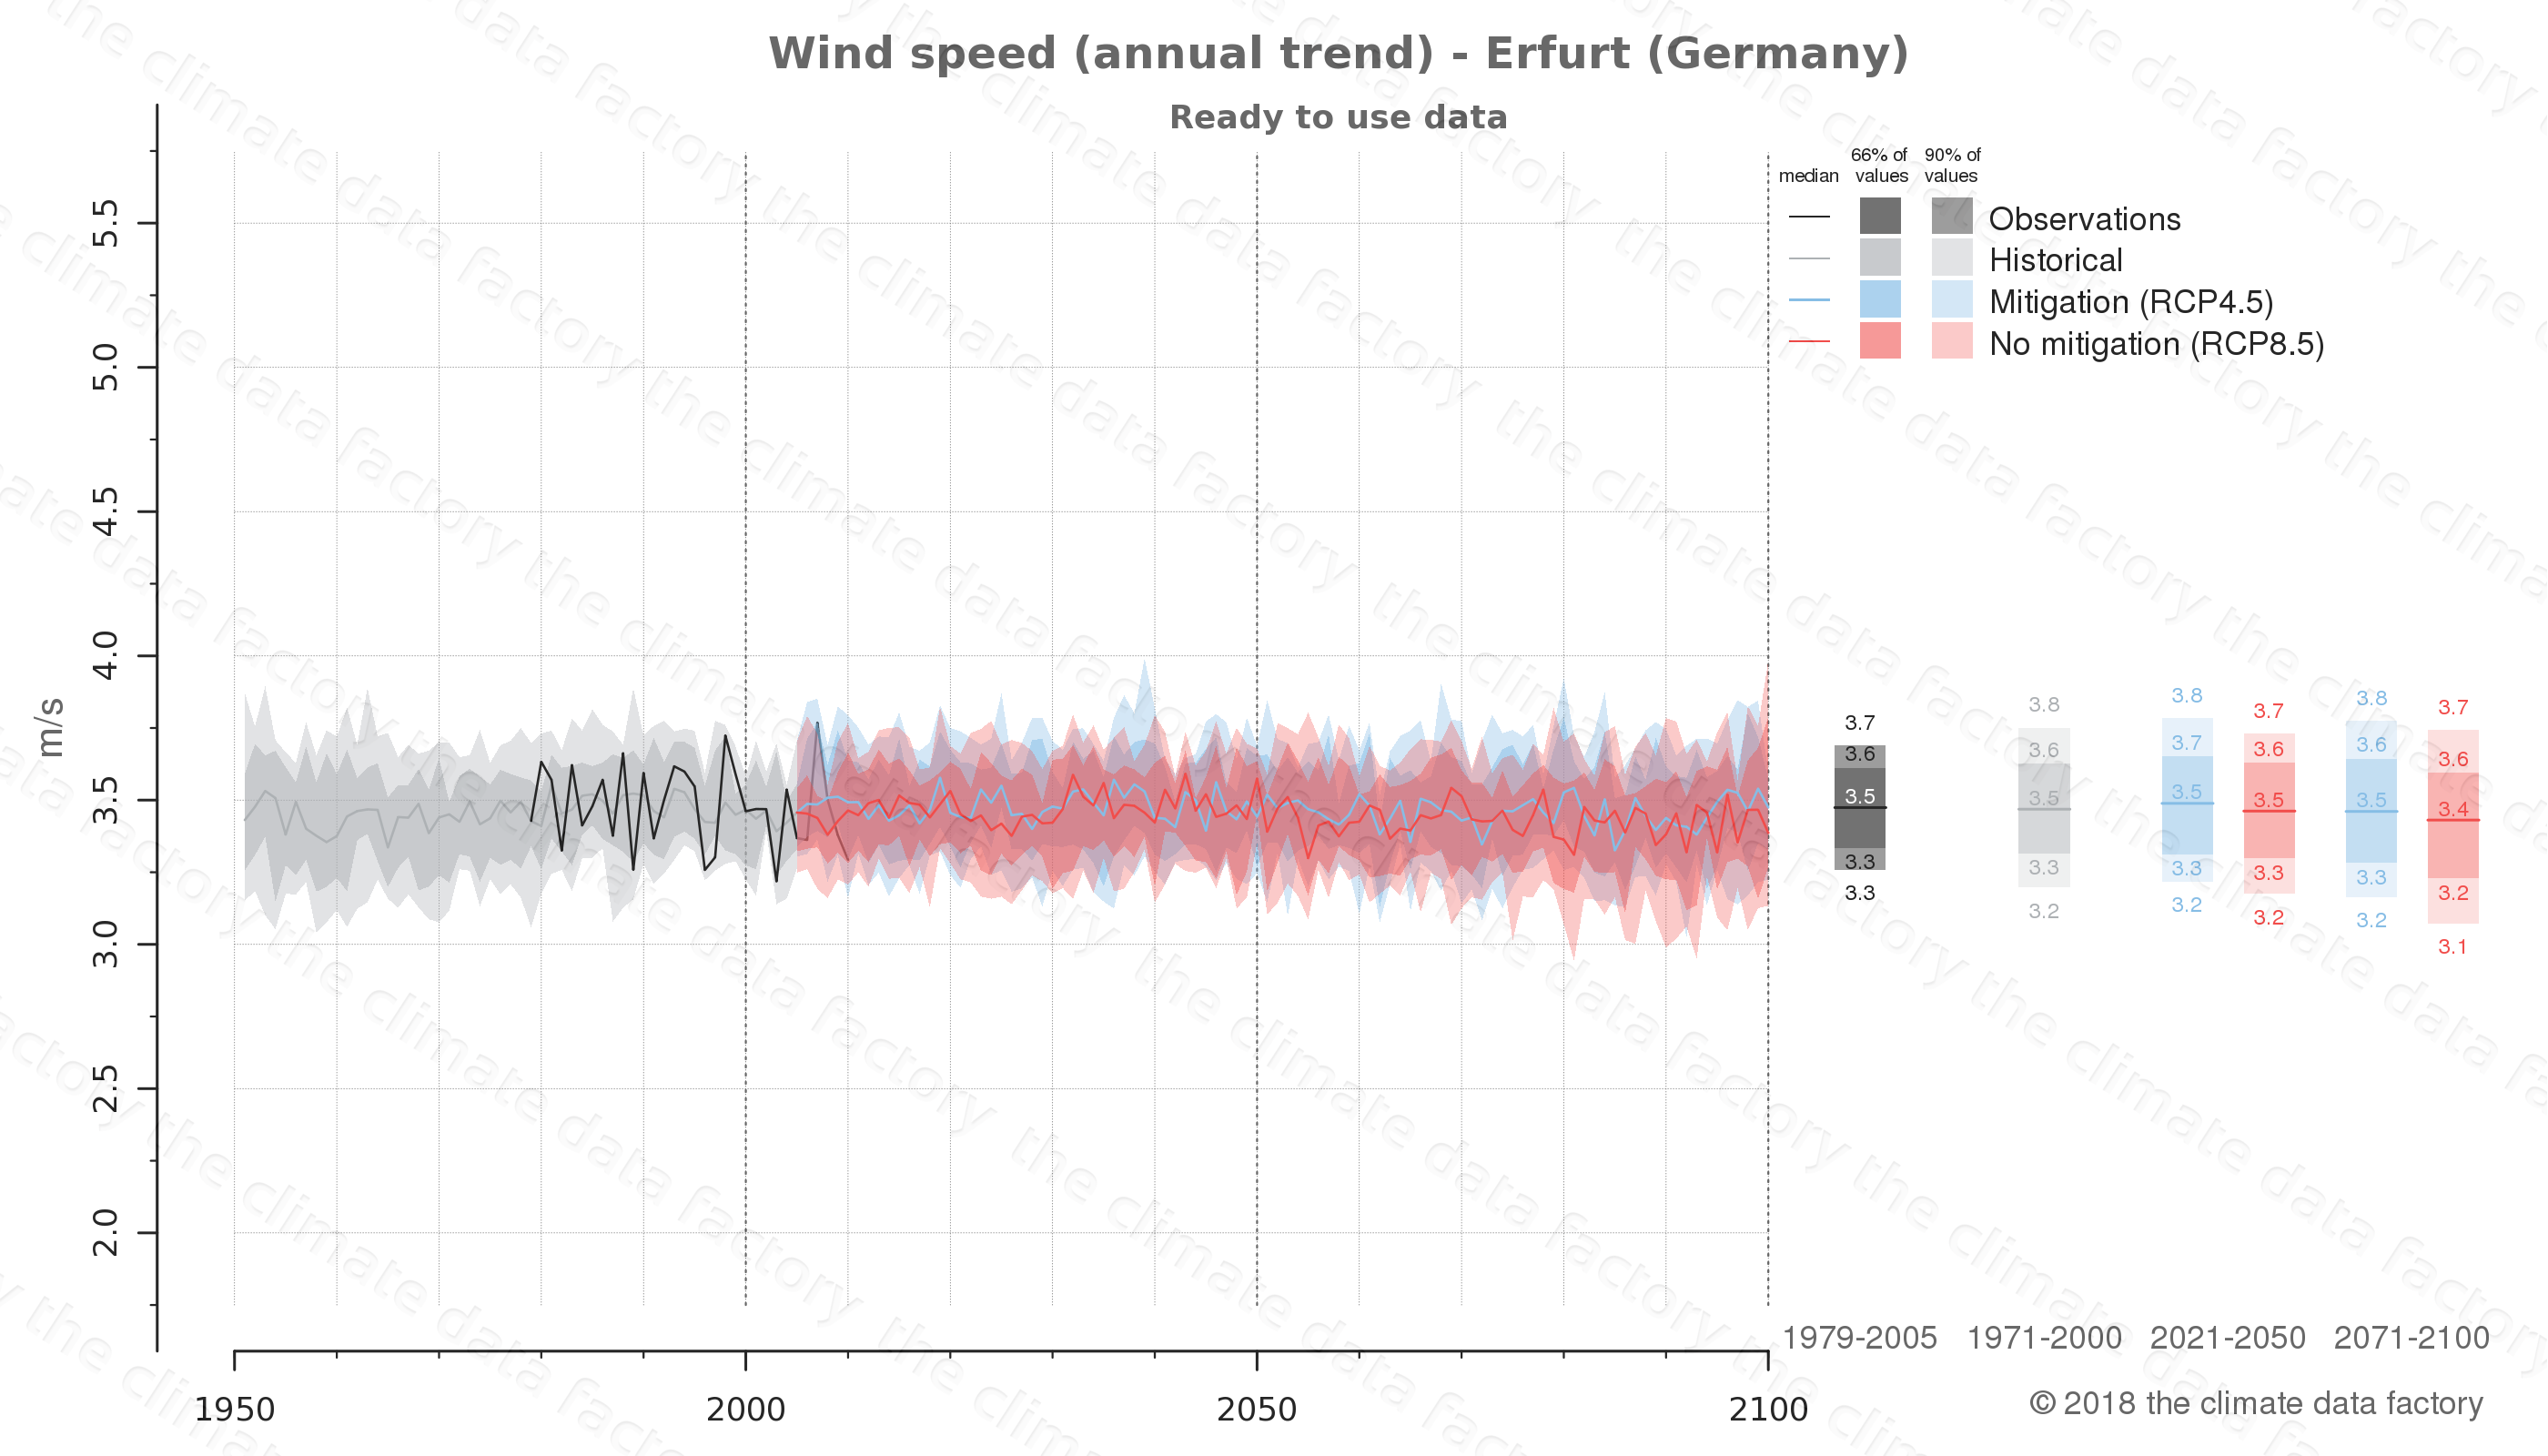 climate change data policy adaptation climate graph city data wind-speed erfurt germany